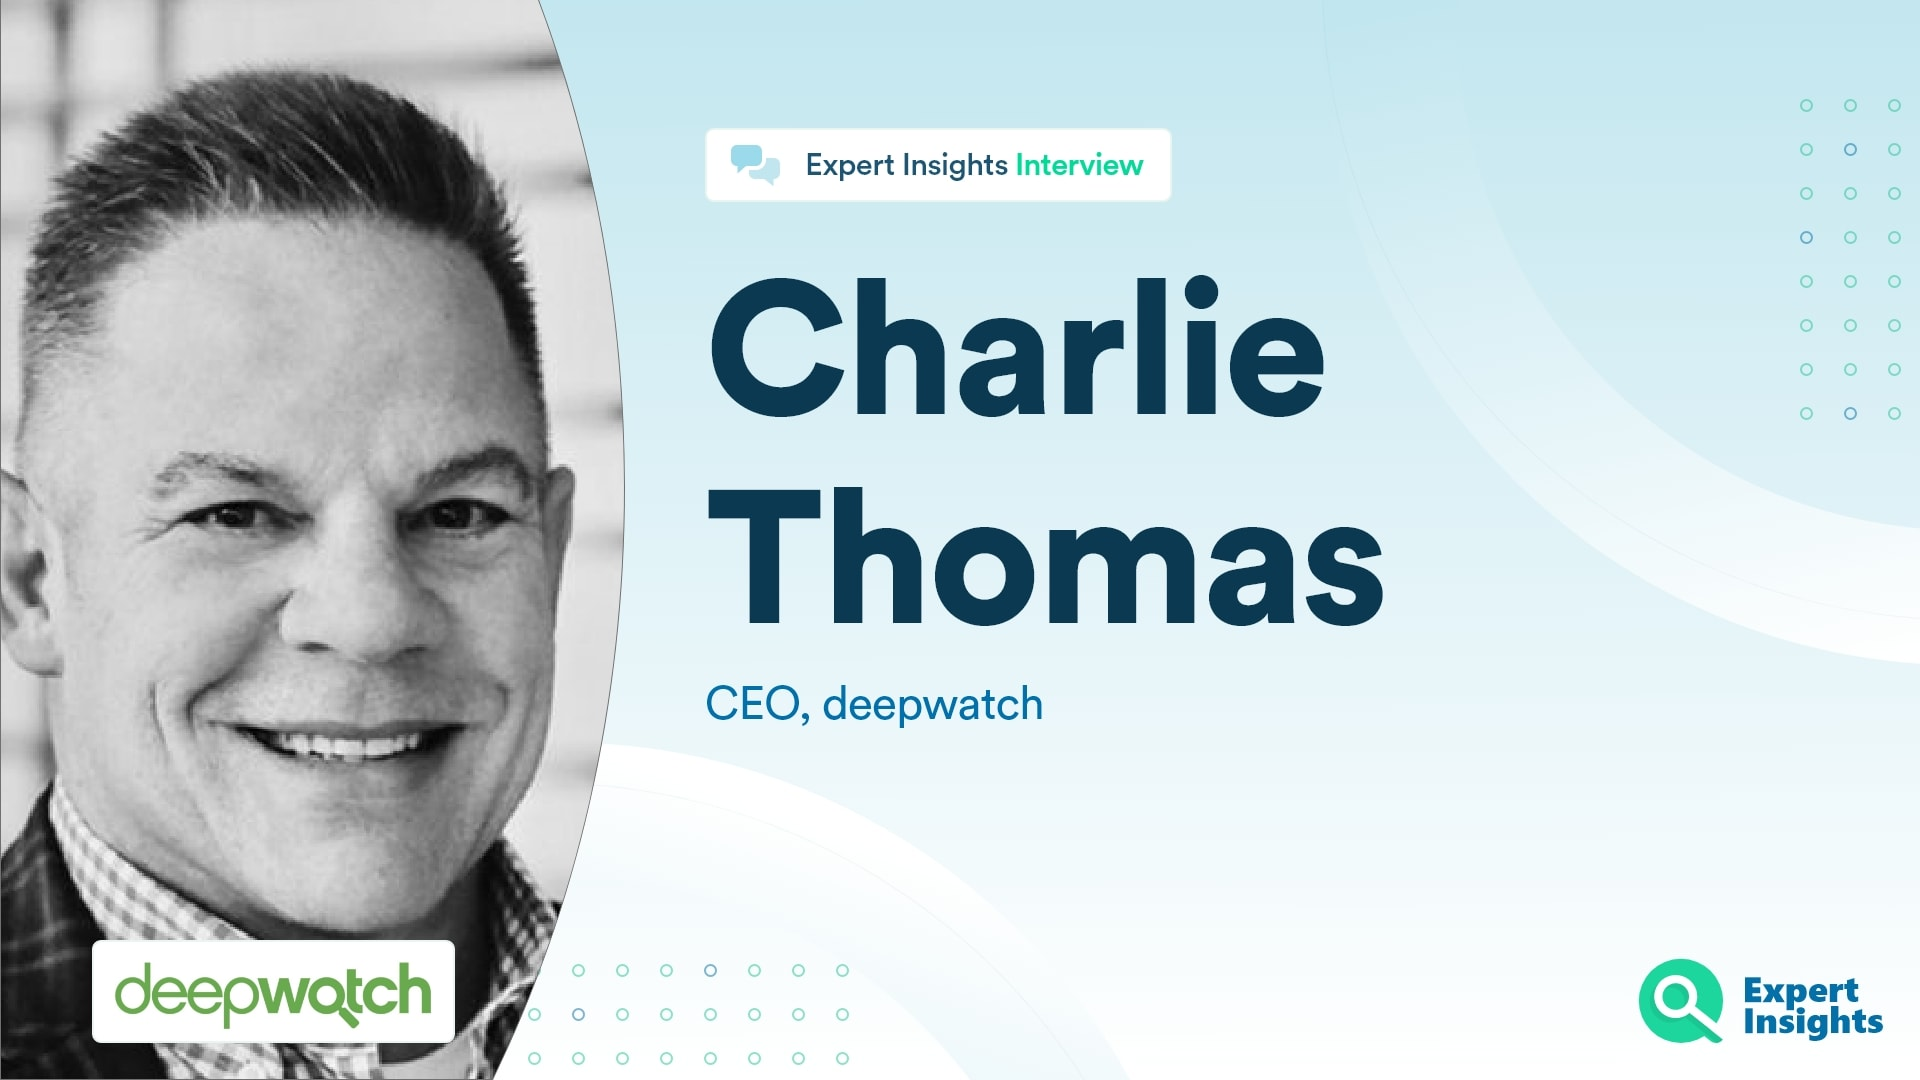 Expert Insights Interview With Charlie Thomas Of deepwatch